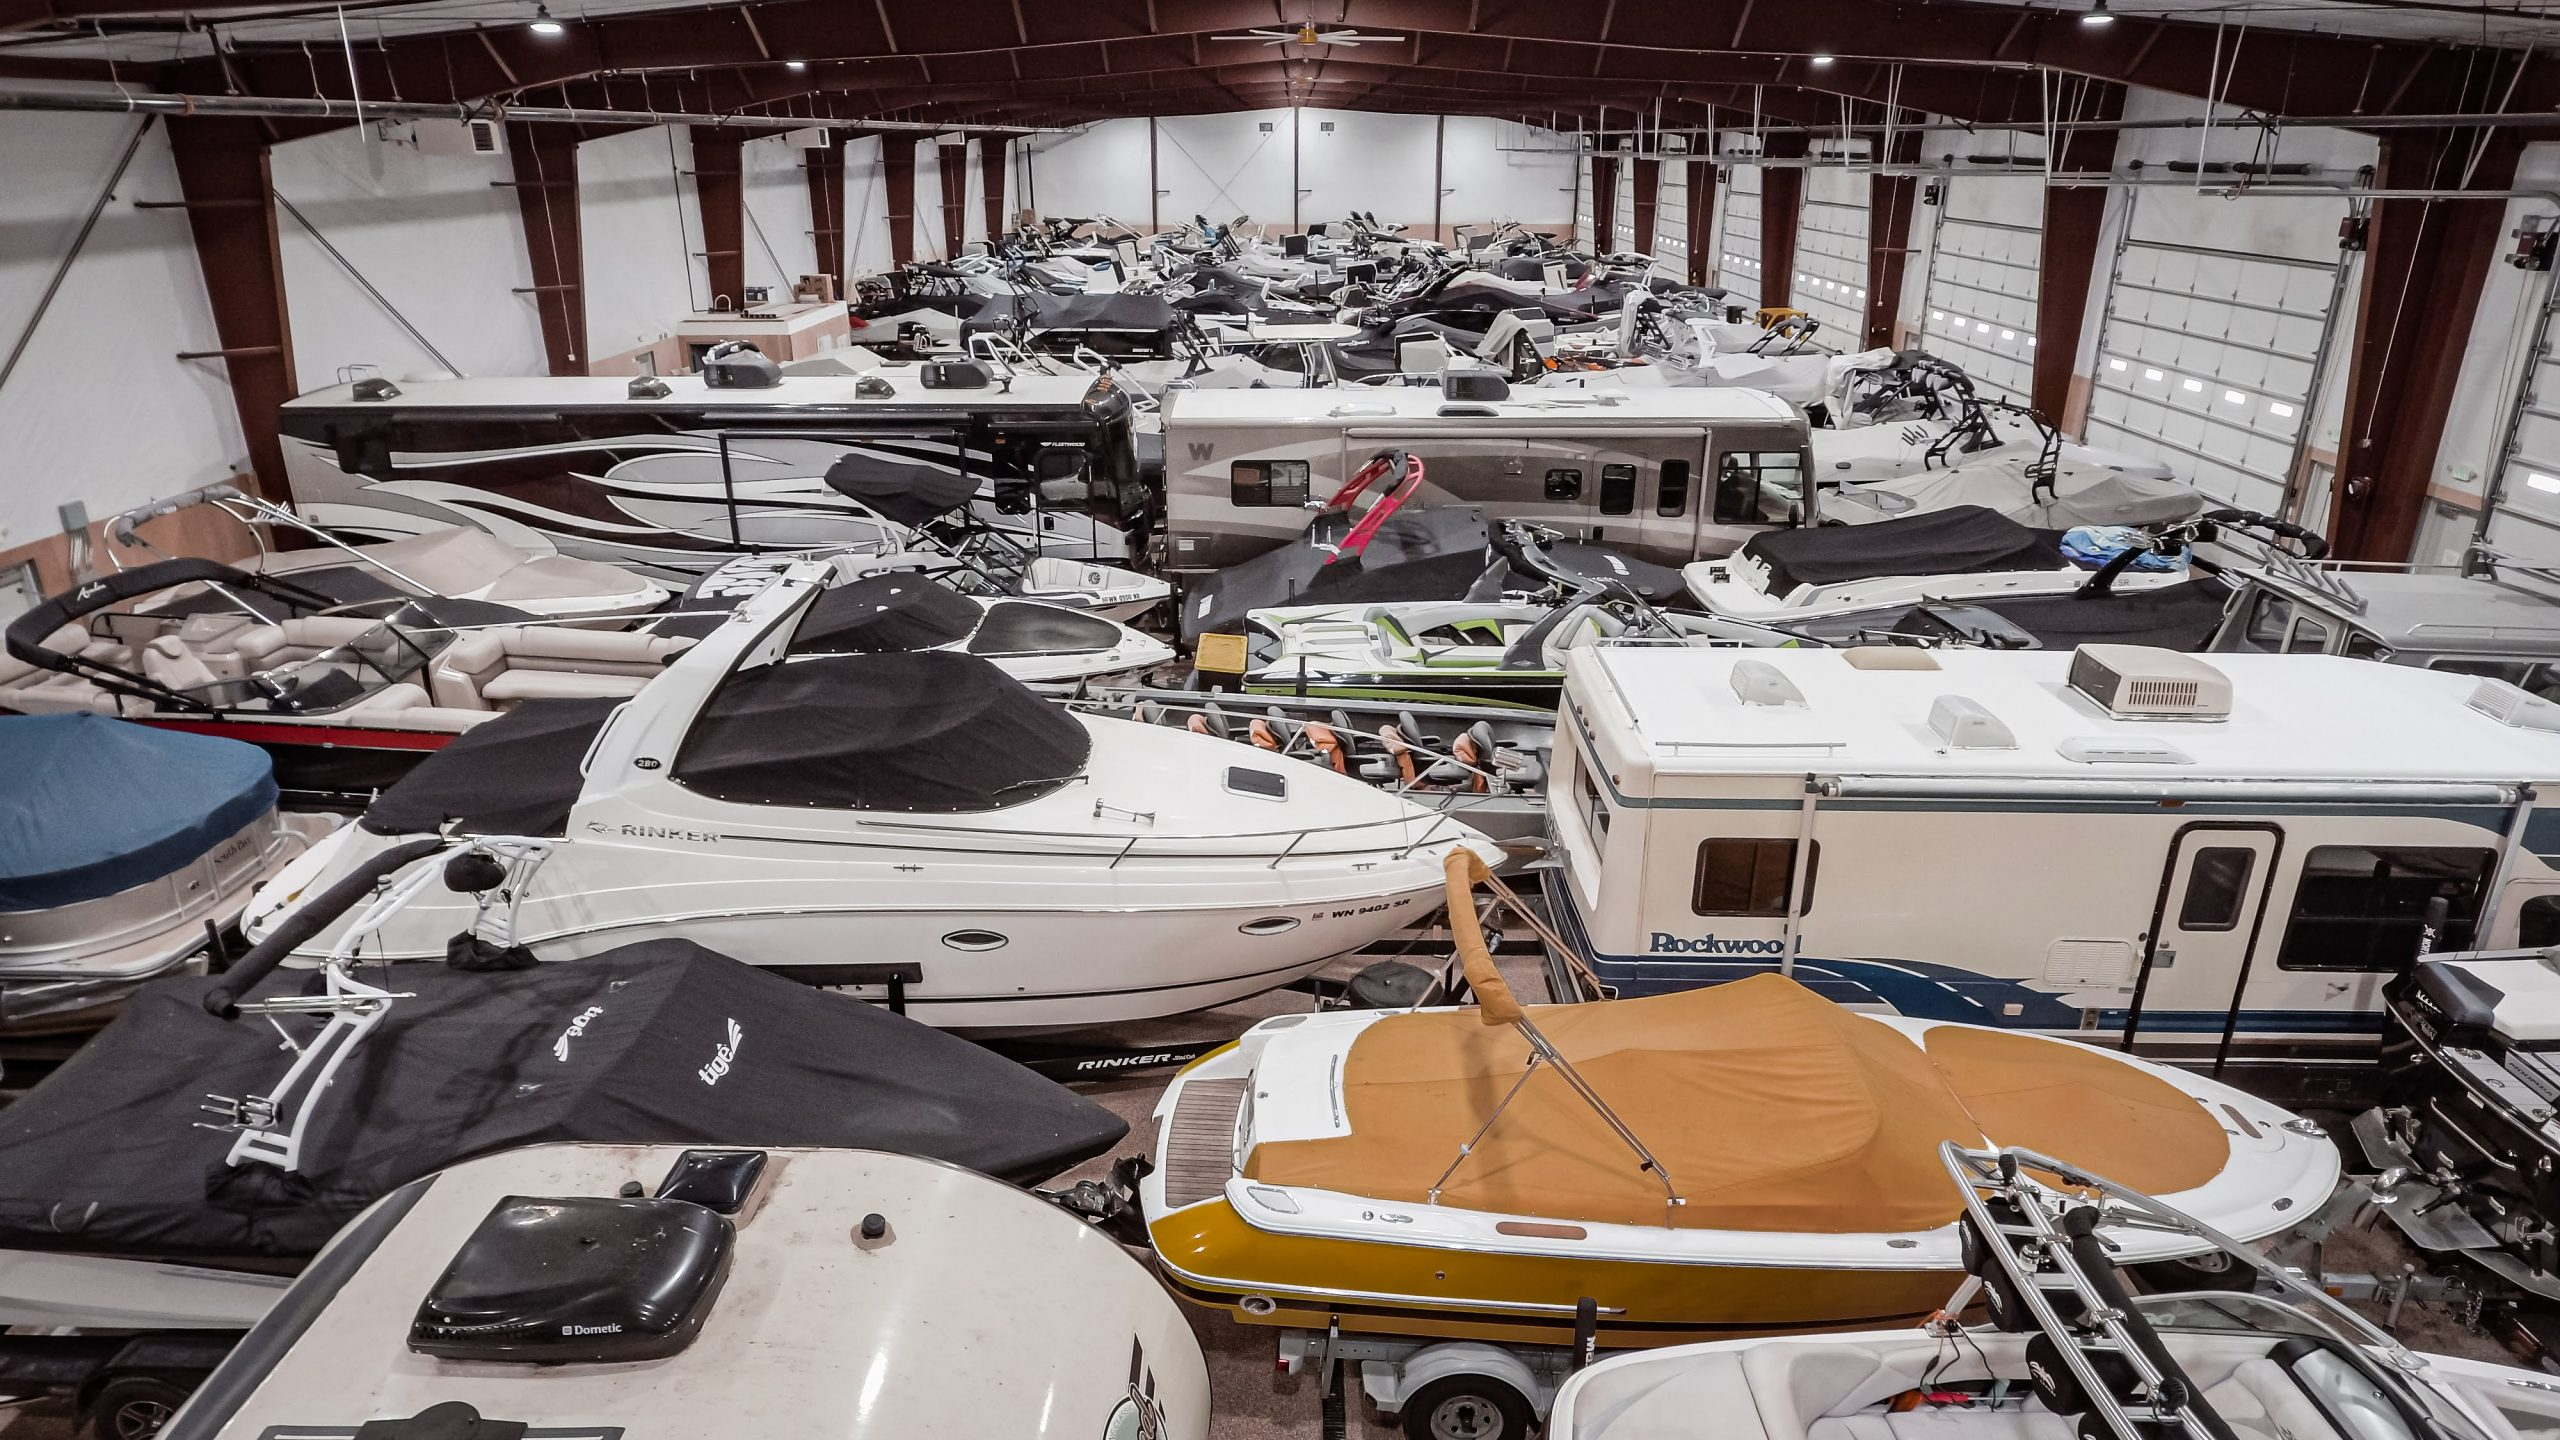 Recreational Vehicle Heated Storage Units Near Everett: 3 Reasons You Need To Consider Storage Off-Site